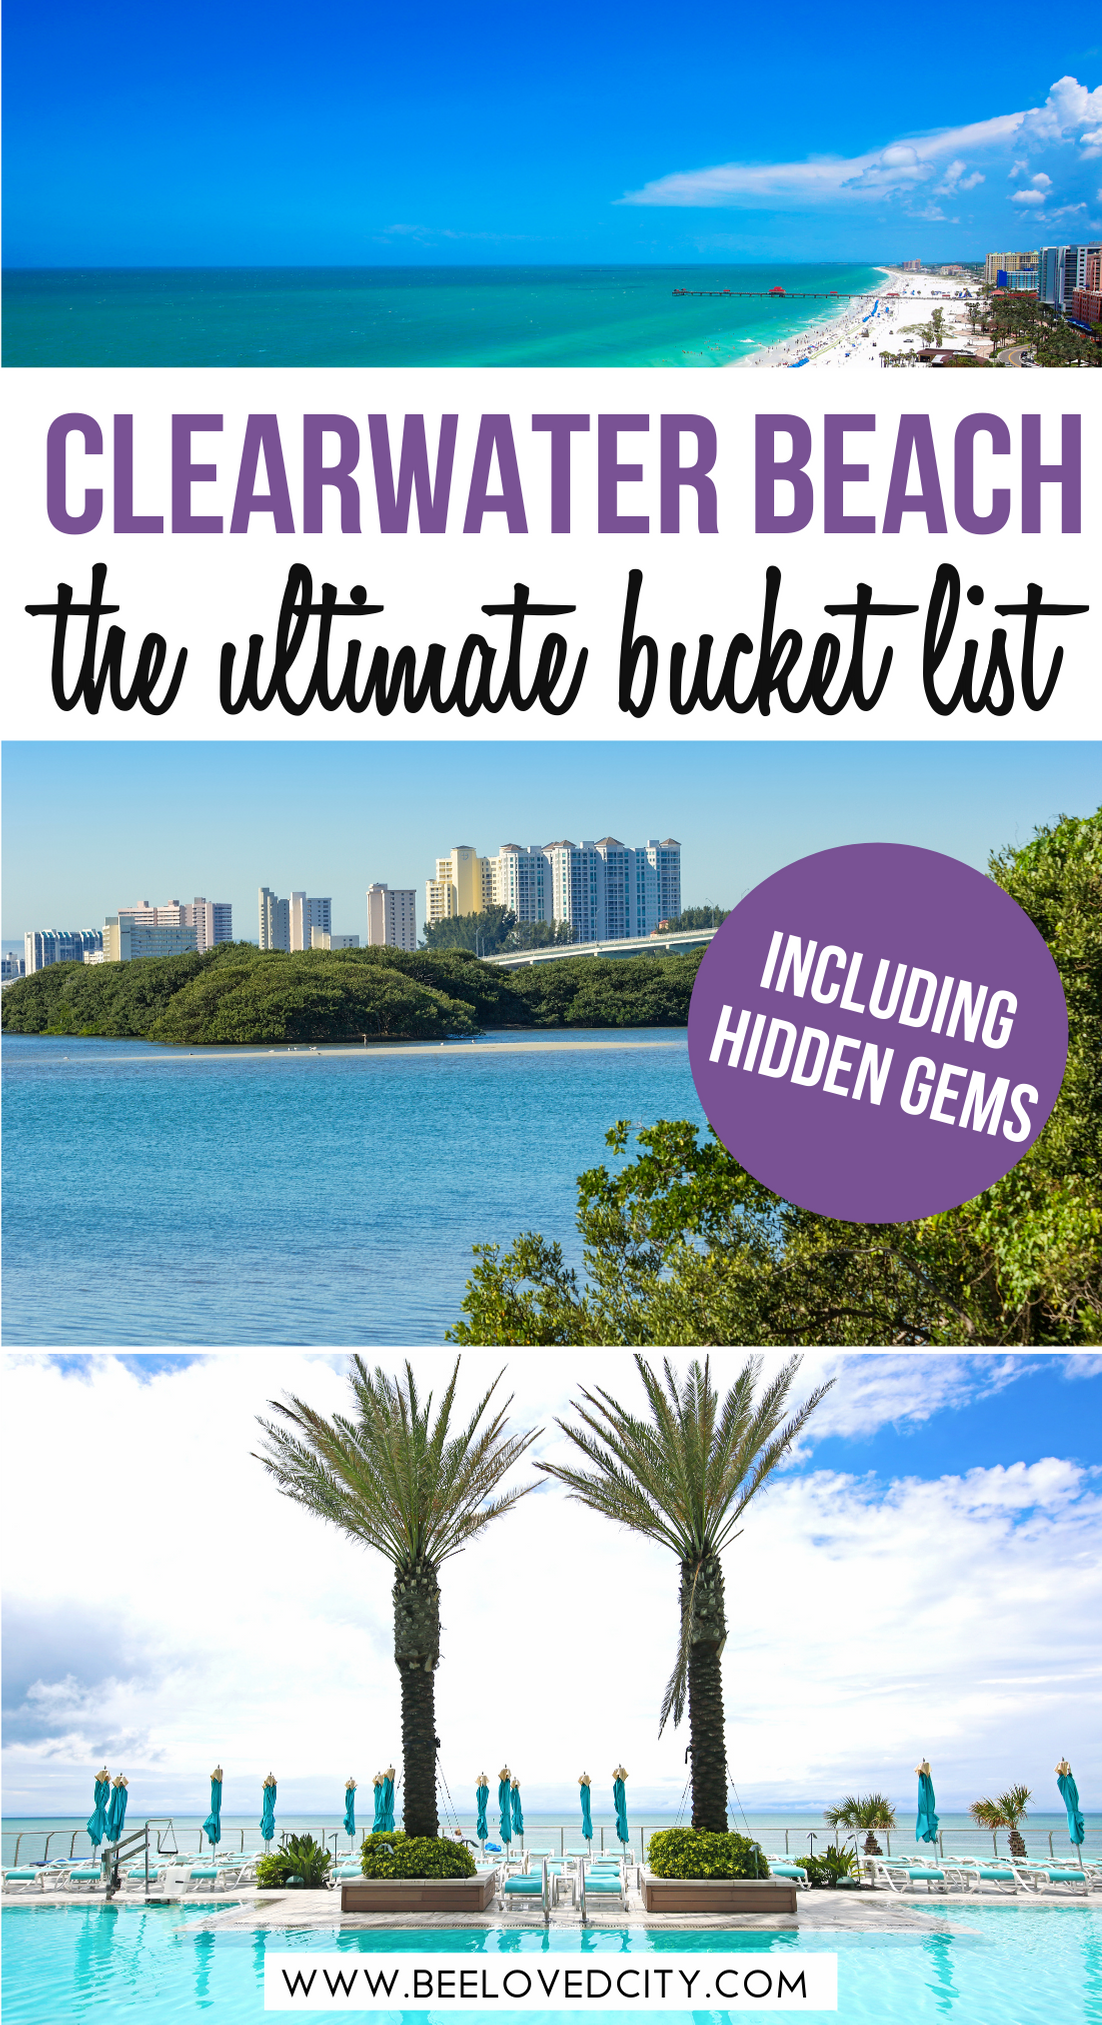 Fun And Unique Things To Do In Clearwater Beach Fl Beeloved City In 2021 Florida Vacation Spots Clearwater Beach Florida Clearwater Beach